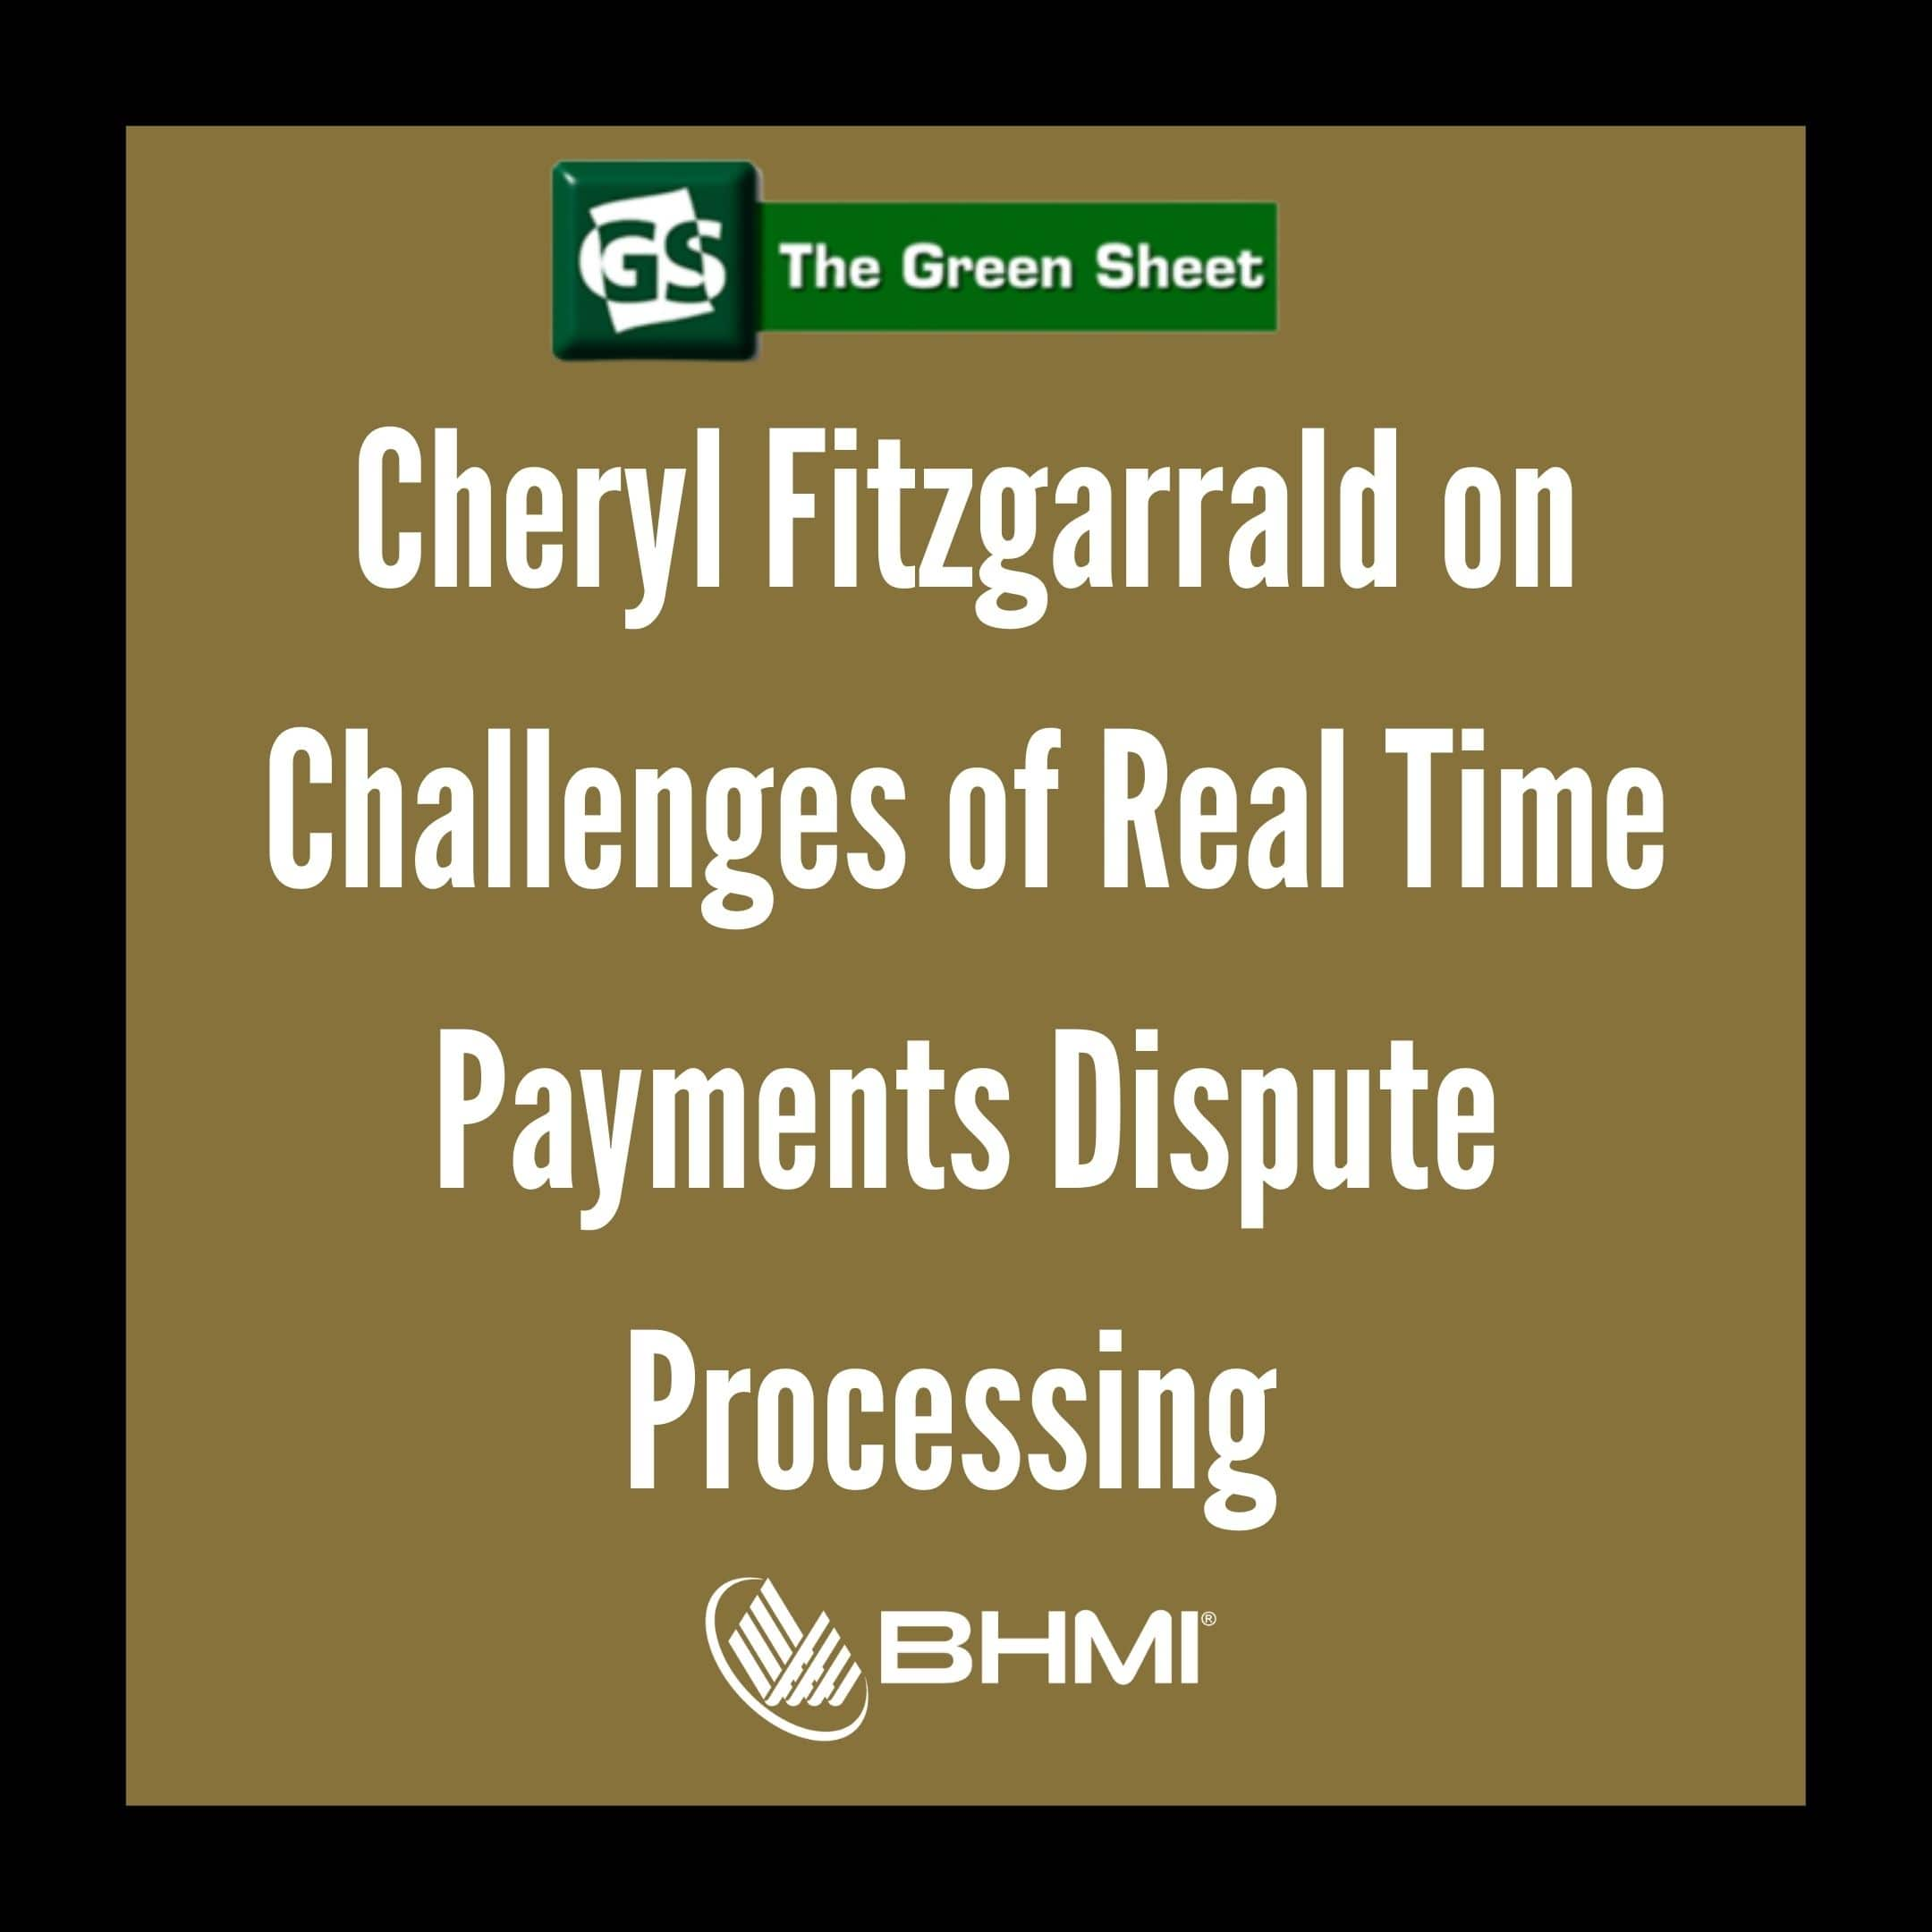 Cheryl Fitzgarrald on Challenges of Real-Time Payments Dispute Processing